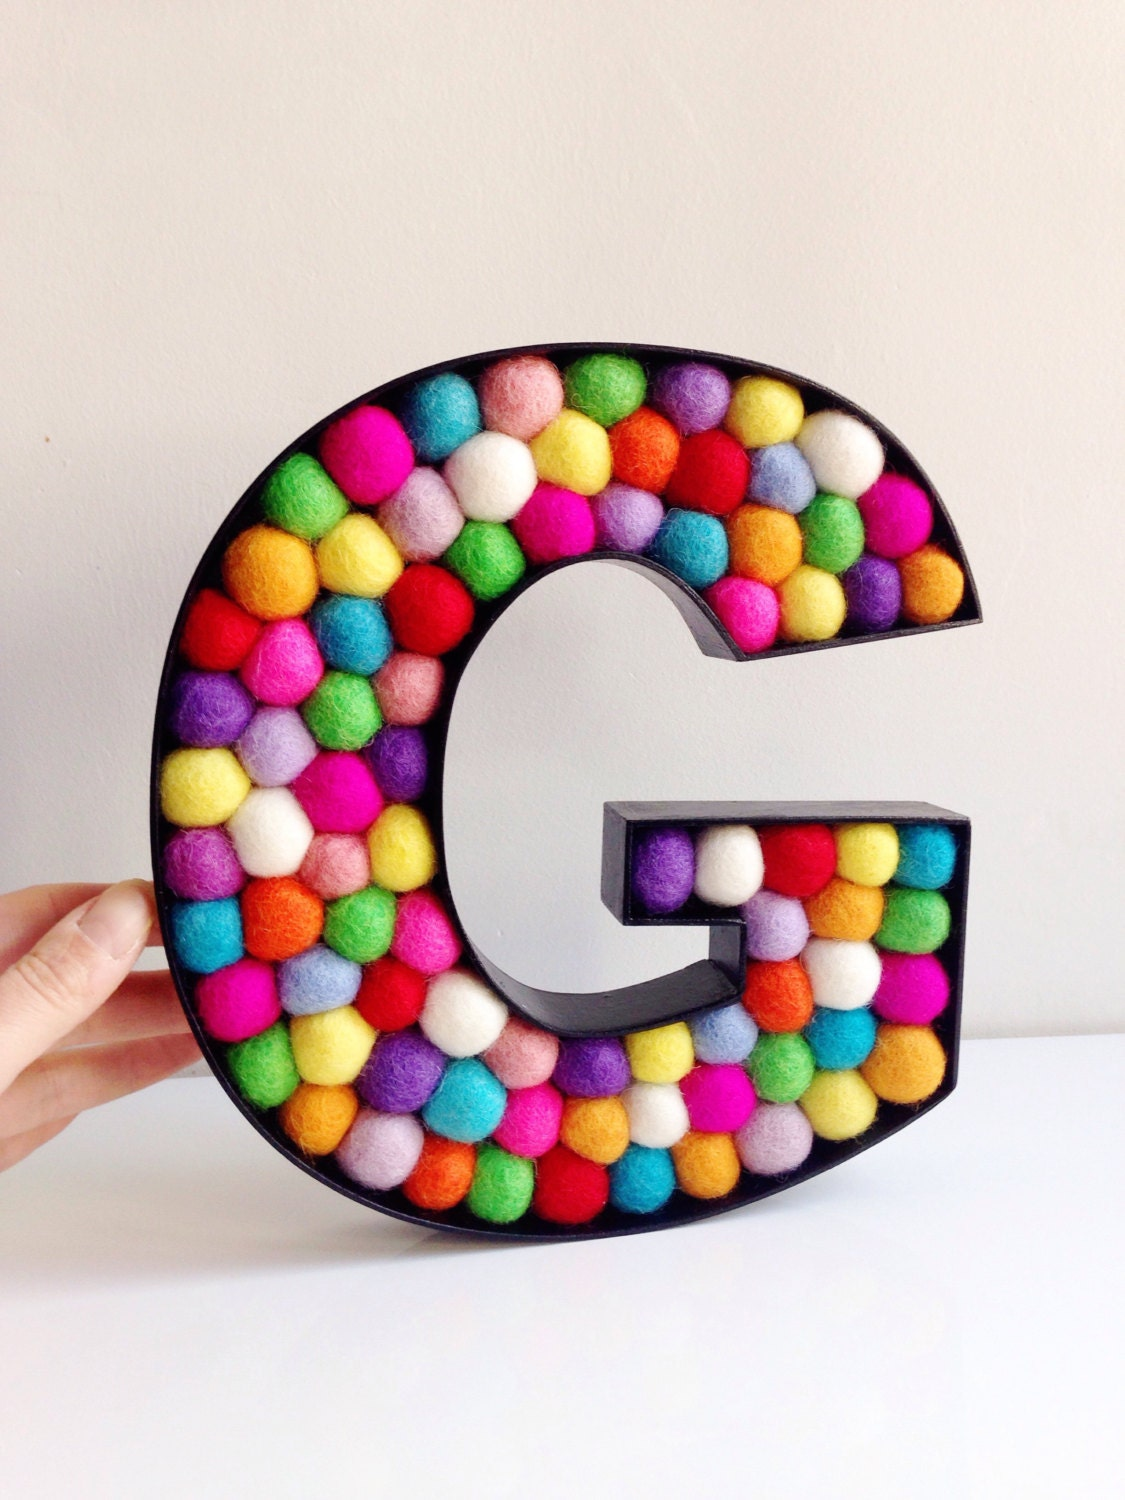 kids room decorative letter g felt ball free standing letters wall letter g monogrammed initial